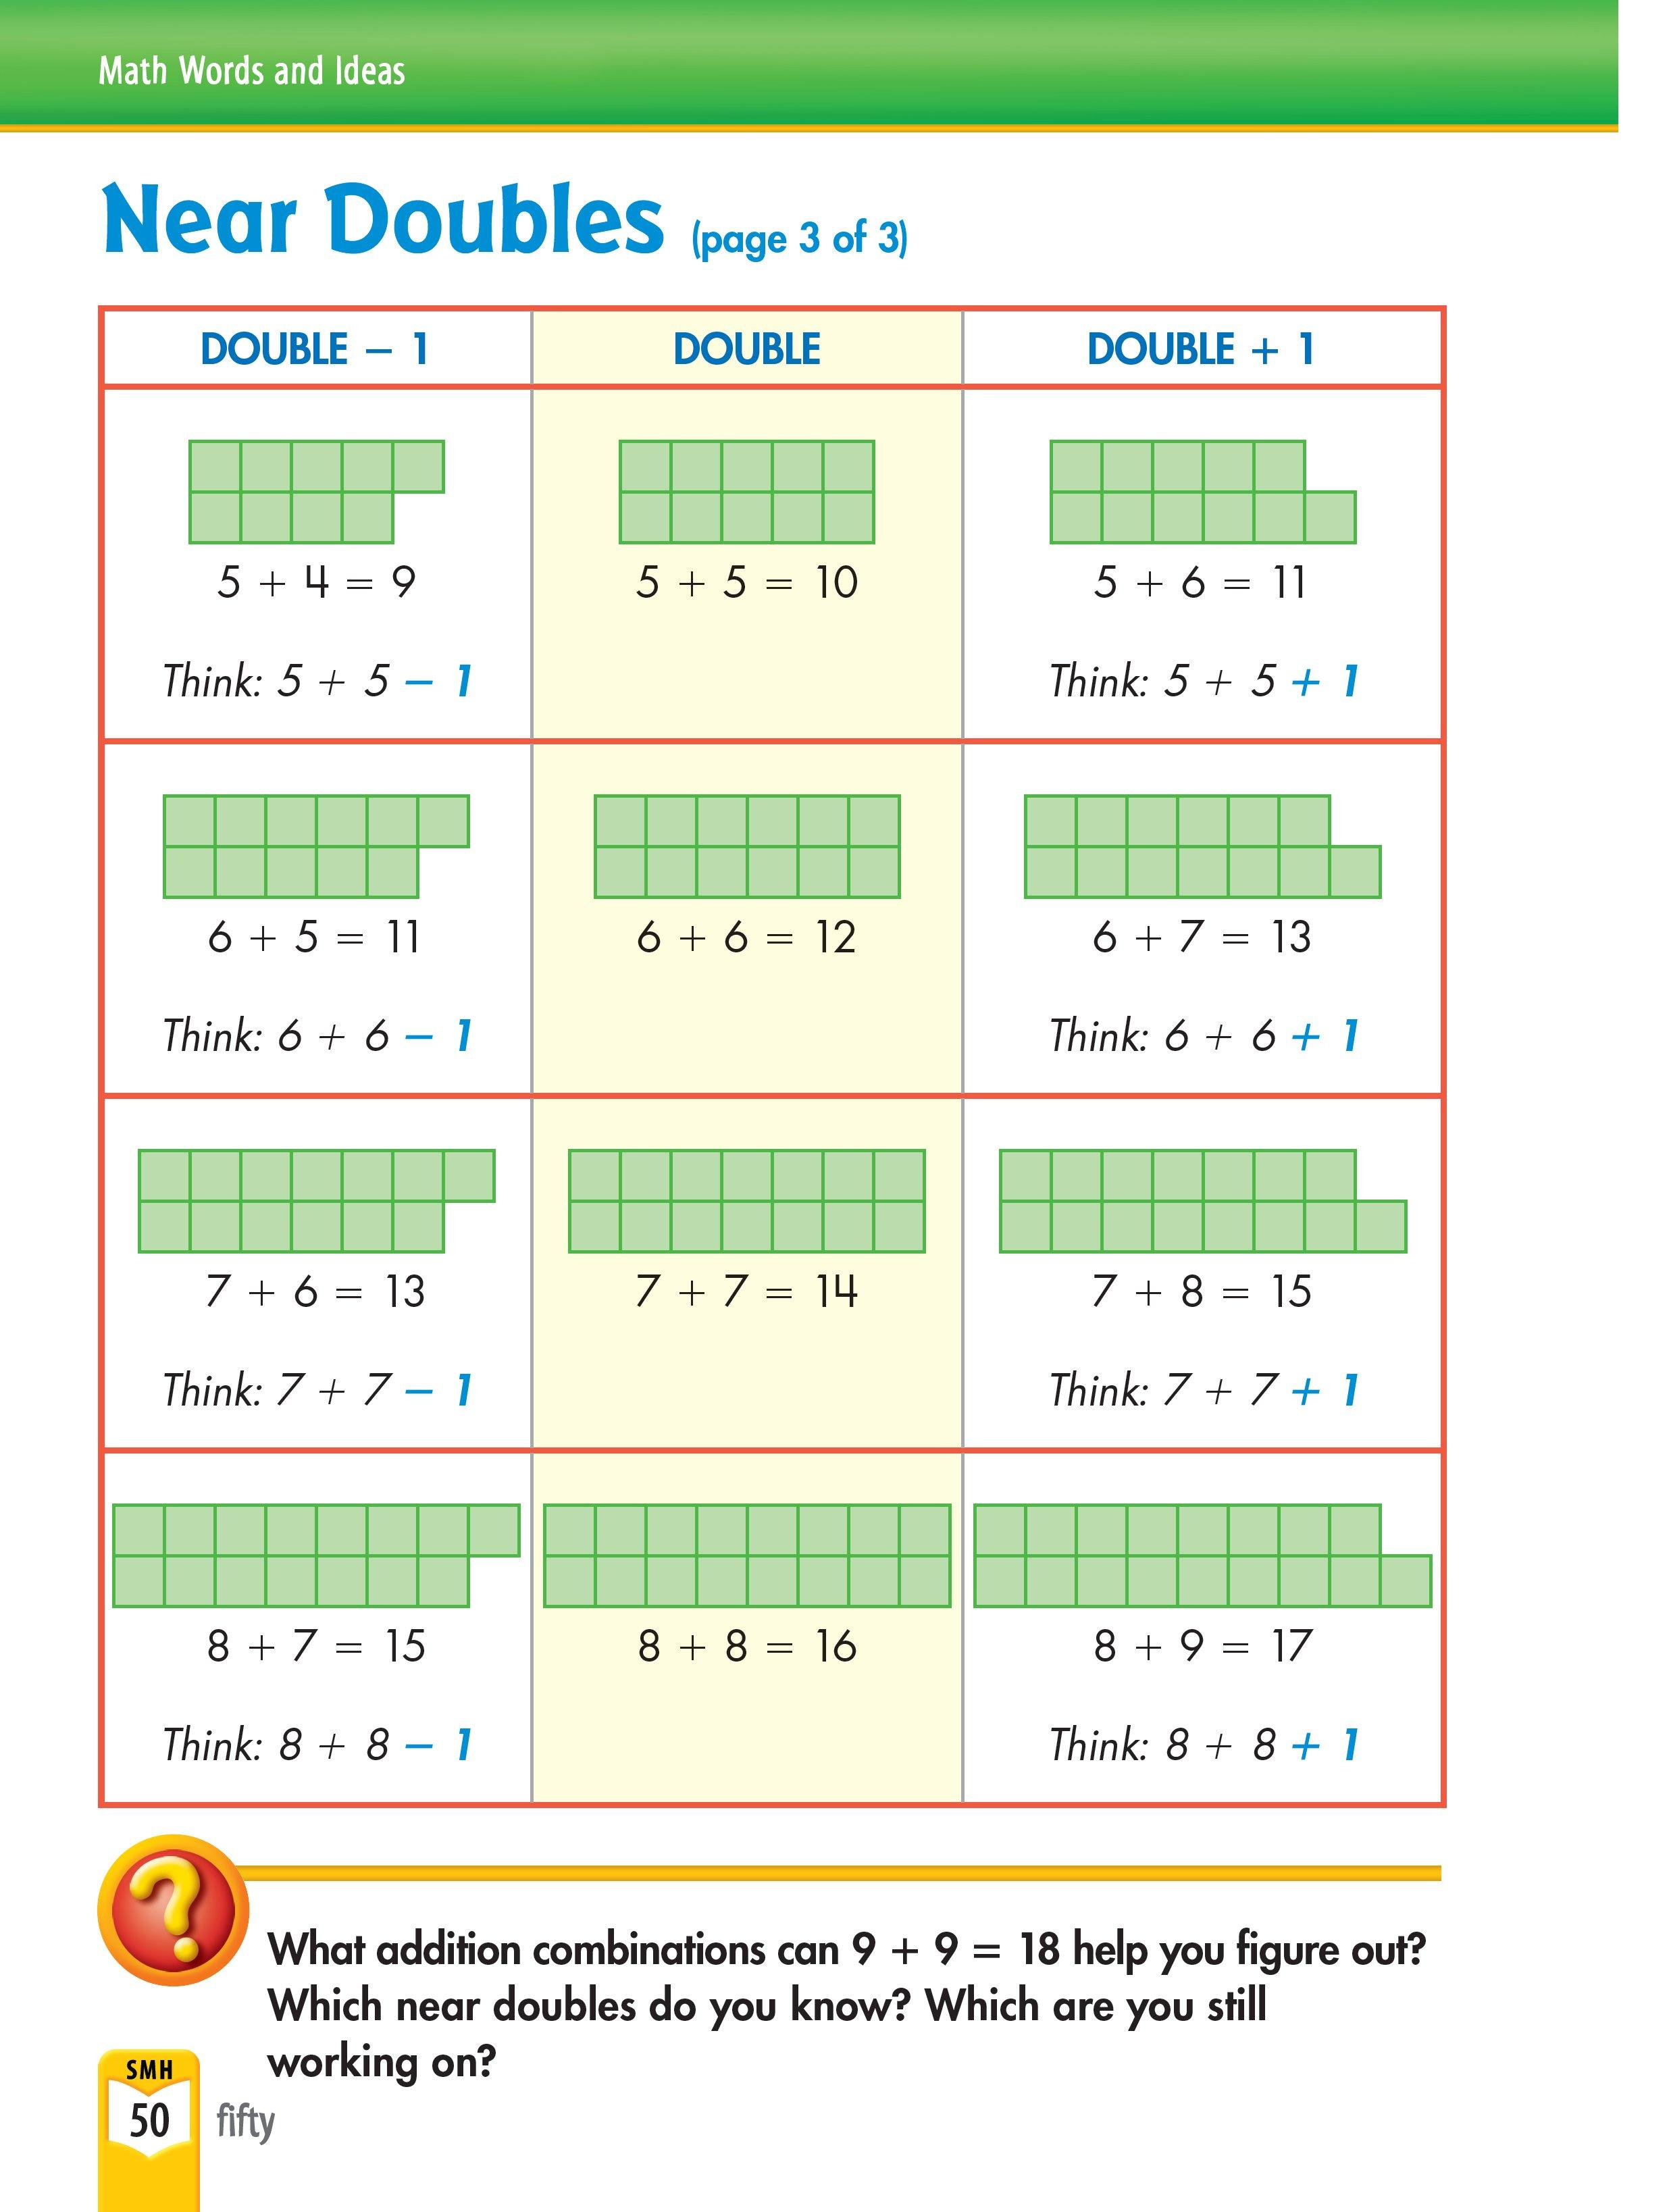 Math table of near doubles